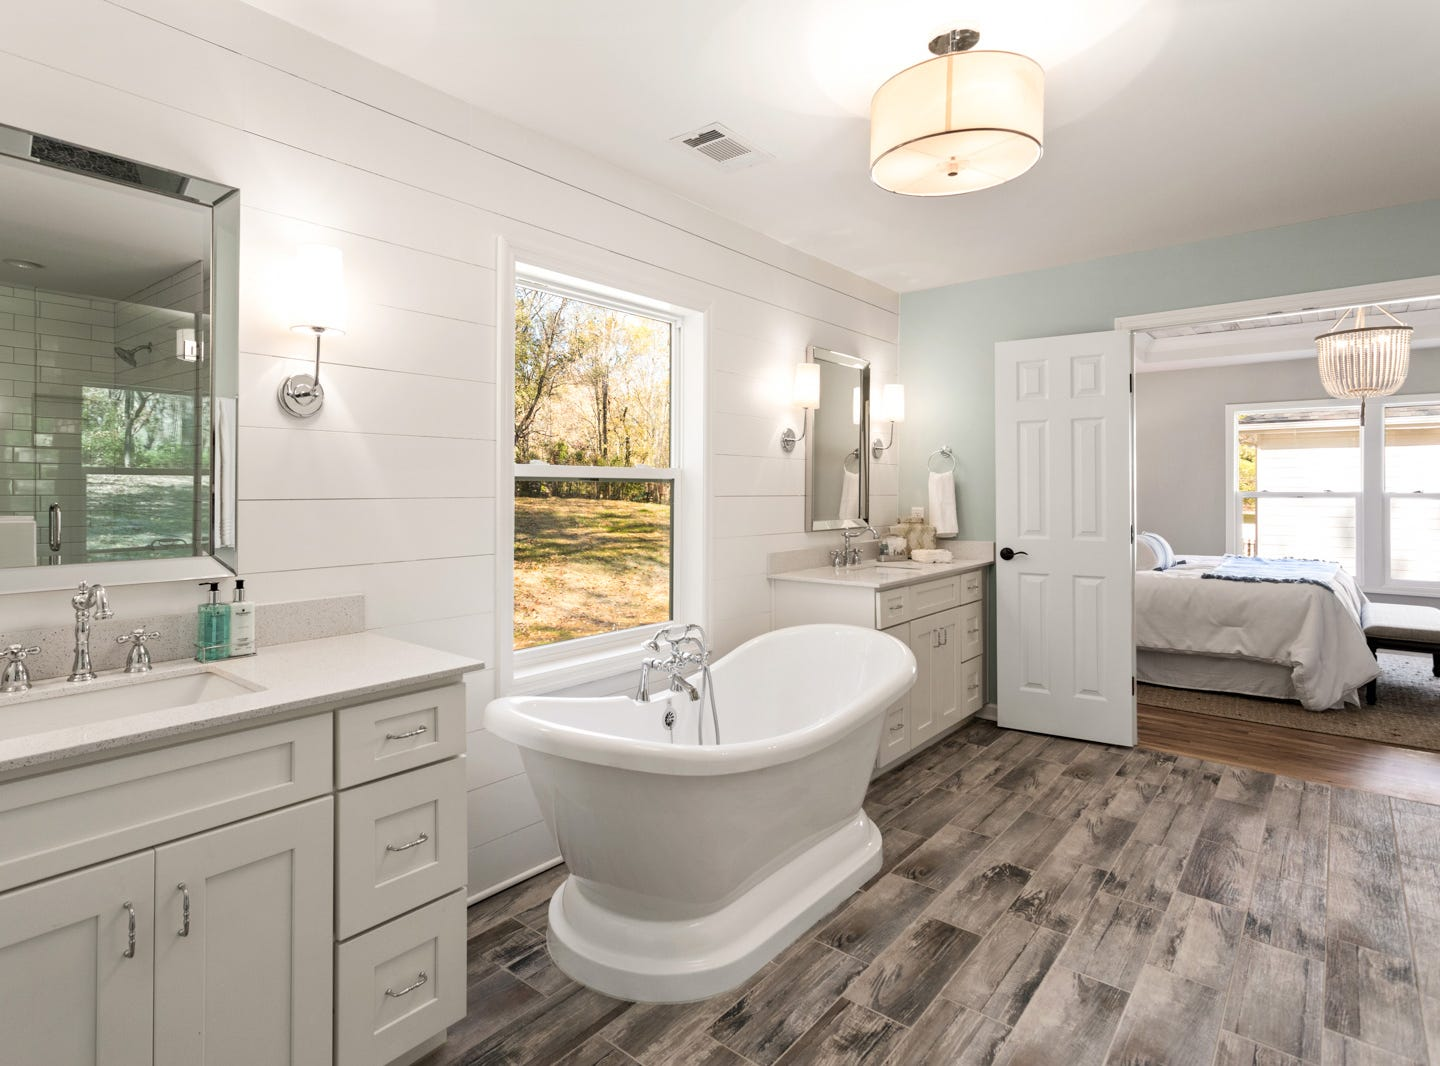 AFTER: The master bath in this home was completely re-imagined to give the next owners plenty of space. Many master bathrooms in these original homes from the 1970s did not have large bathrooms connected to a master suite.